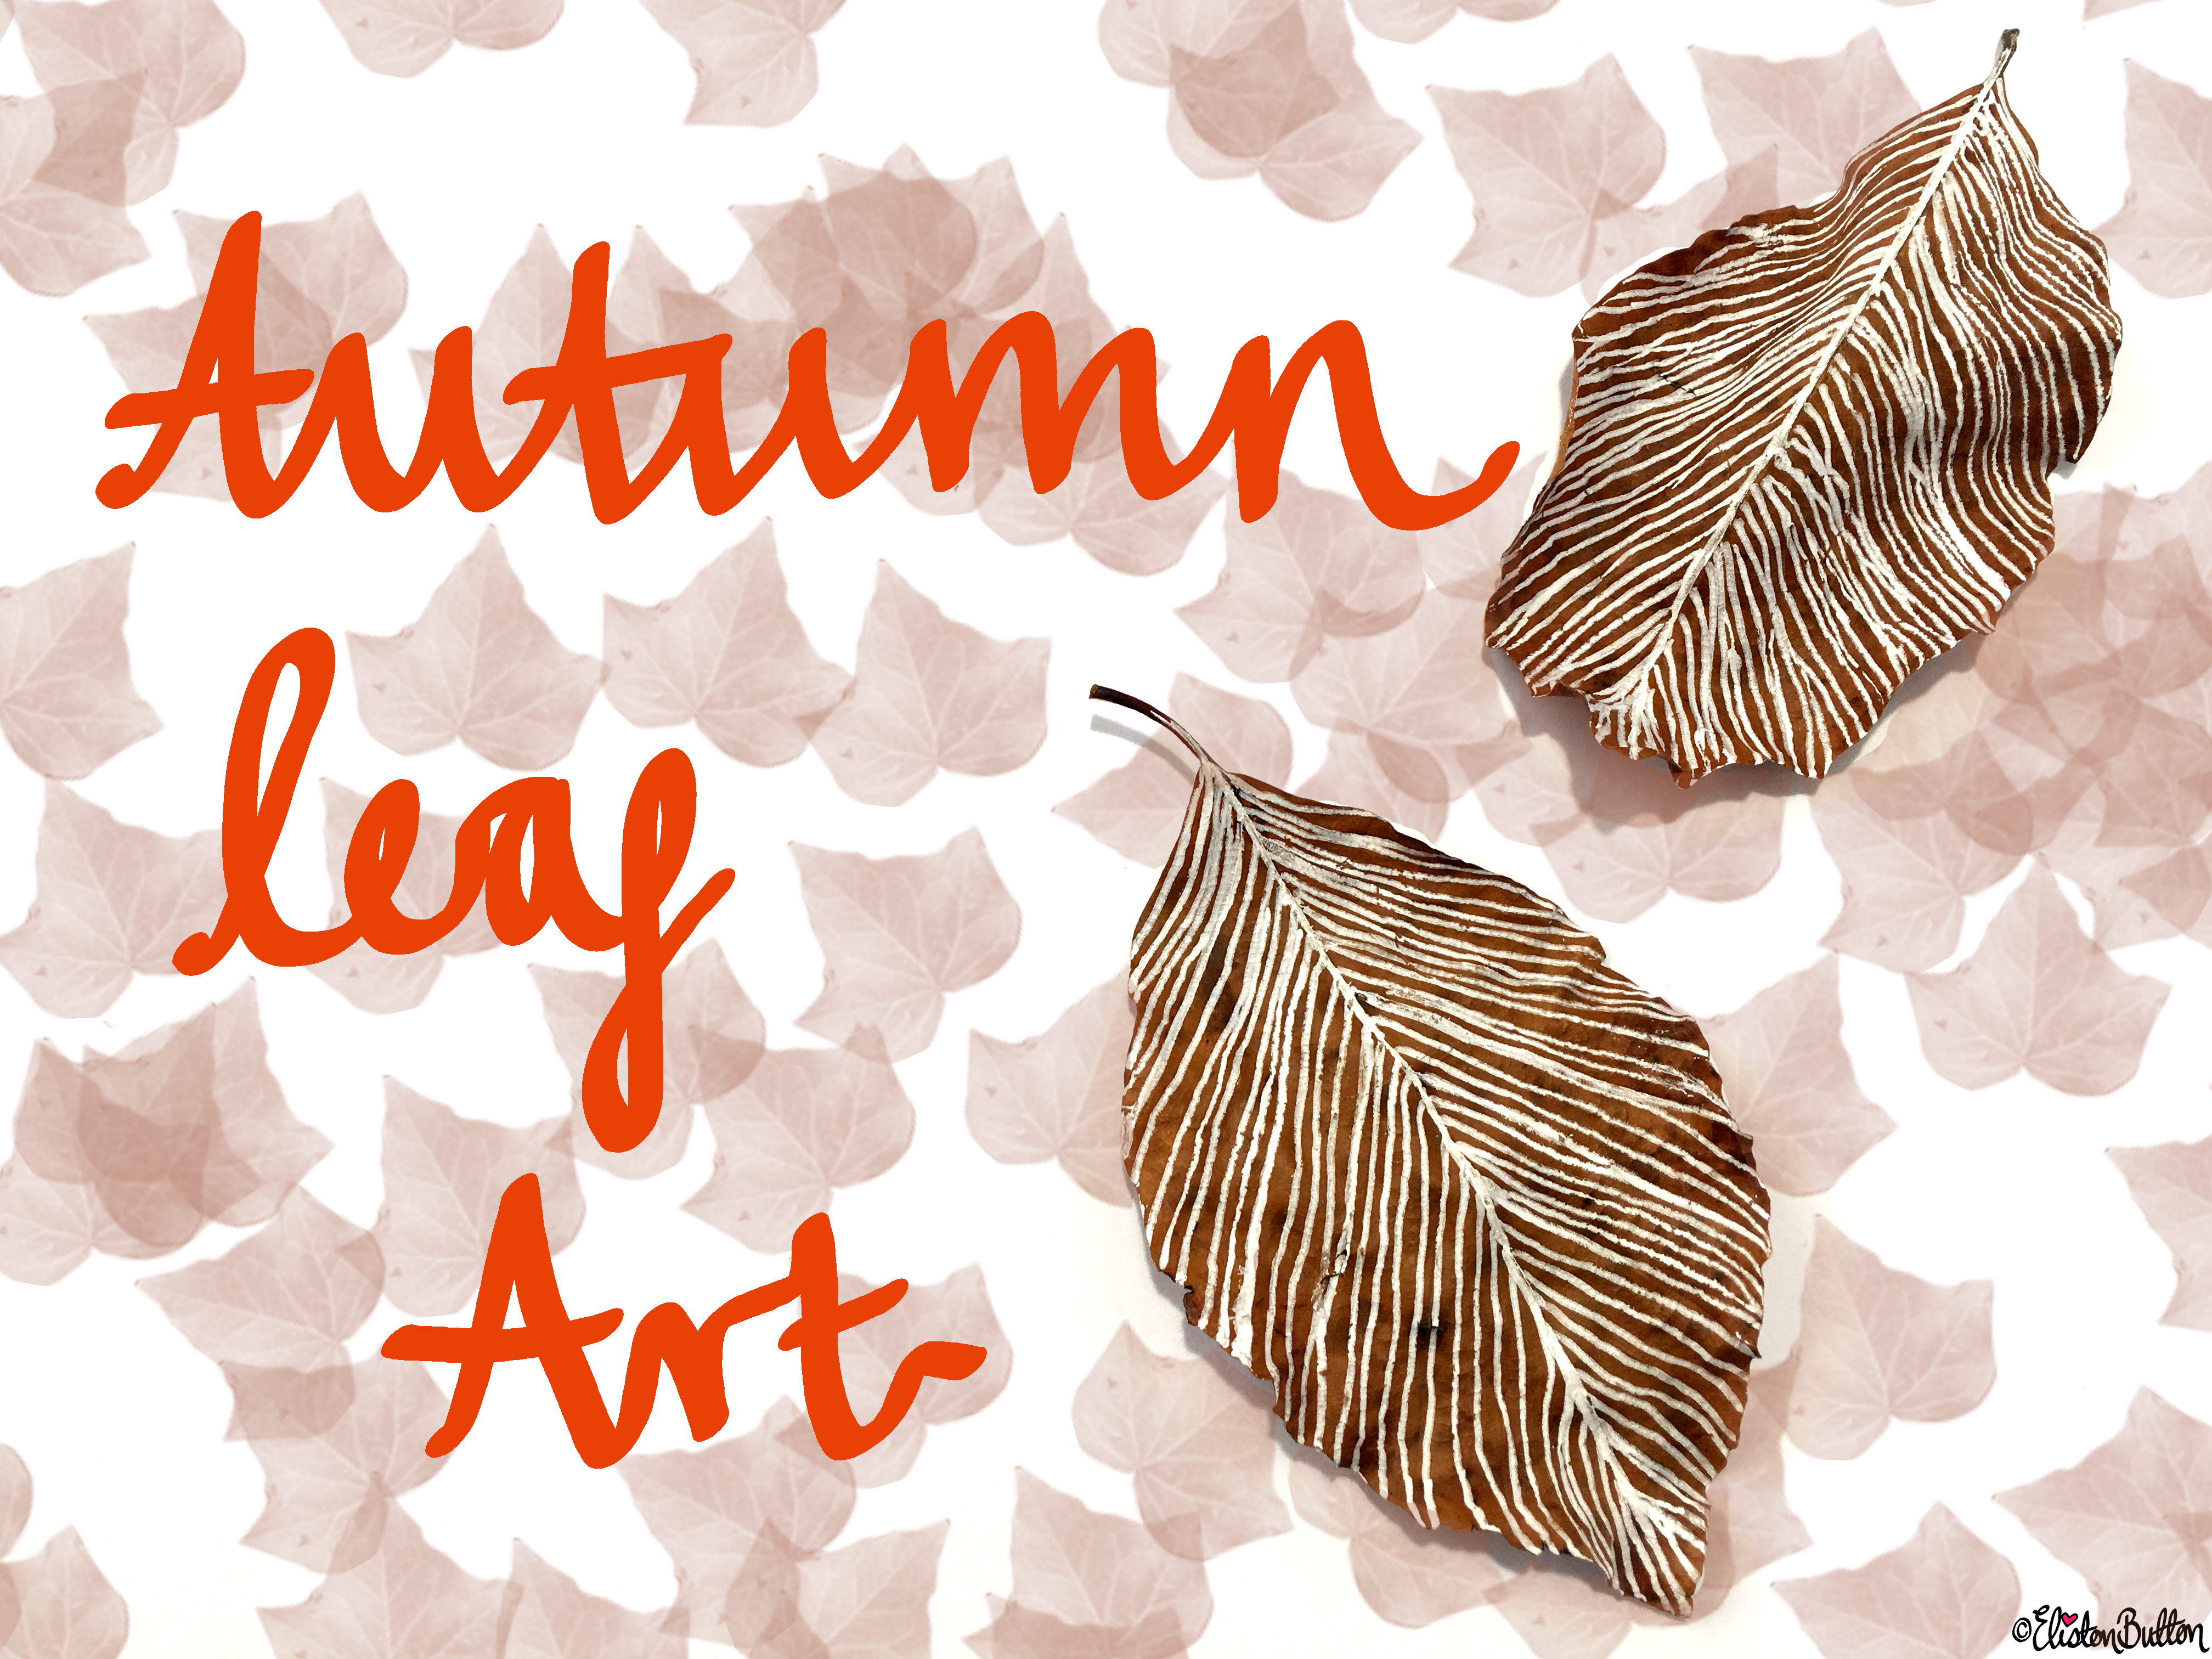 Workspace Wednesday - Autumn Leaf Art - For the Love of…Autumn at www.elistonbutton.com - Eliston Button - That Crafty Kid – Art, Design, Craft & Adventure.